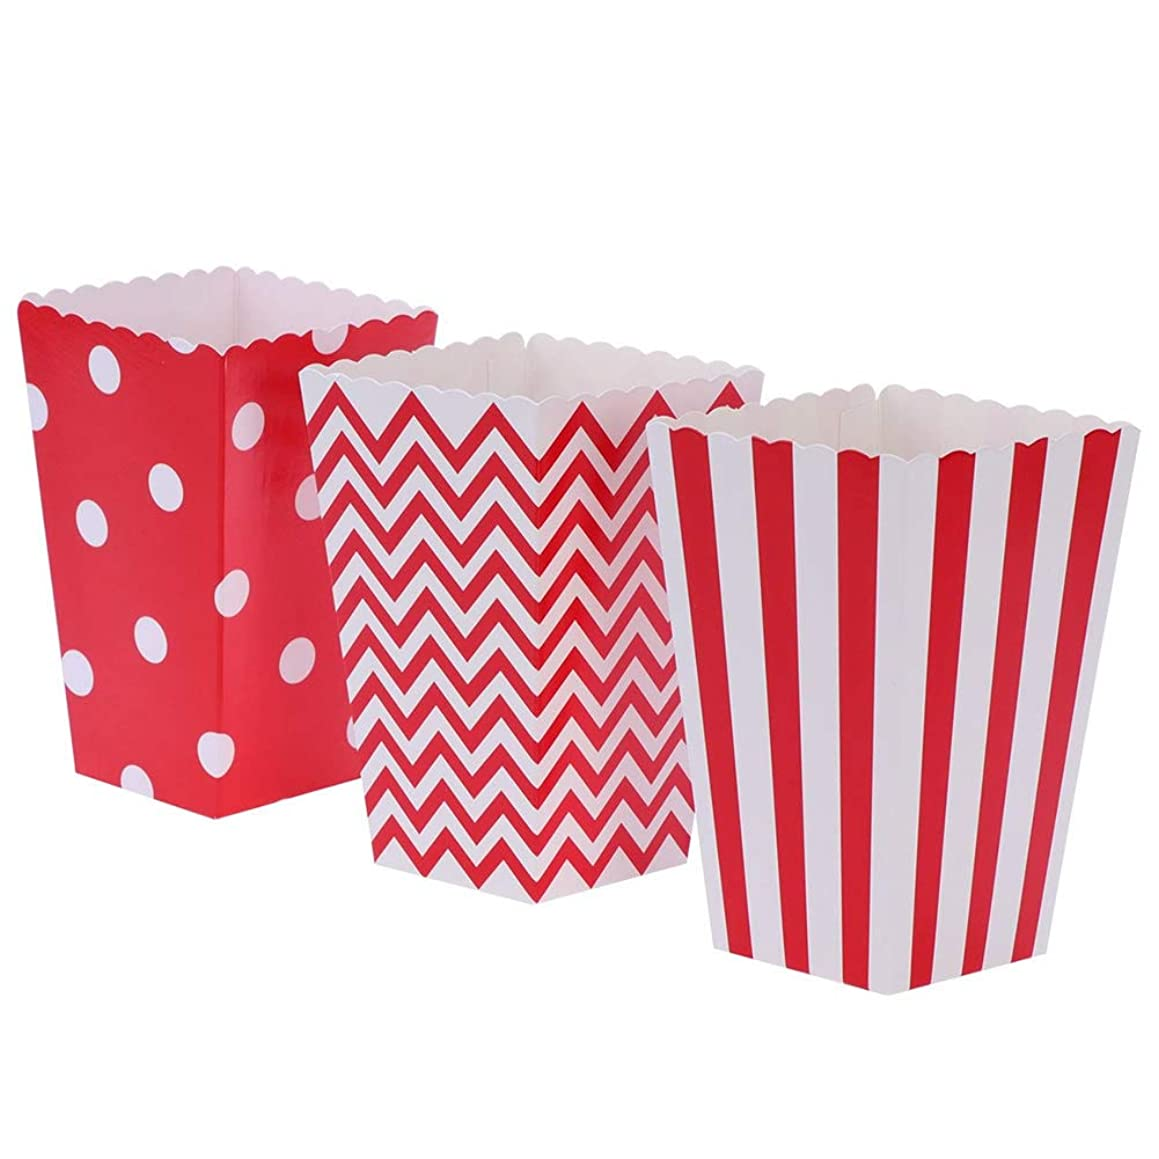 Nenluny 24pcs Popcorn Boxes Holders Containers Cardboard Candy Container Snack Paper Bags for Movie Theater Dessert Tables Wedding Favors (Red)